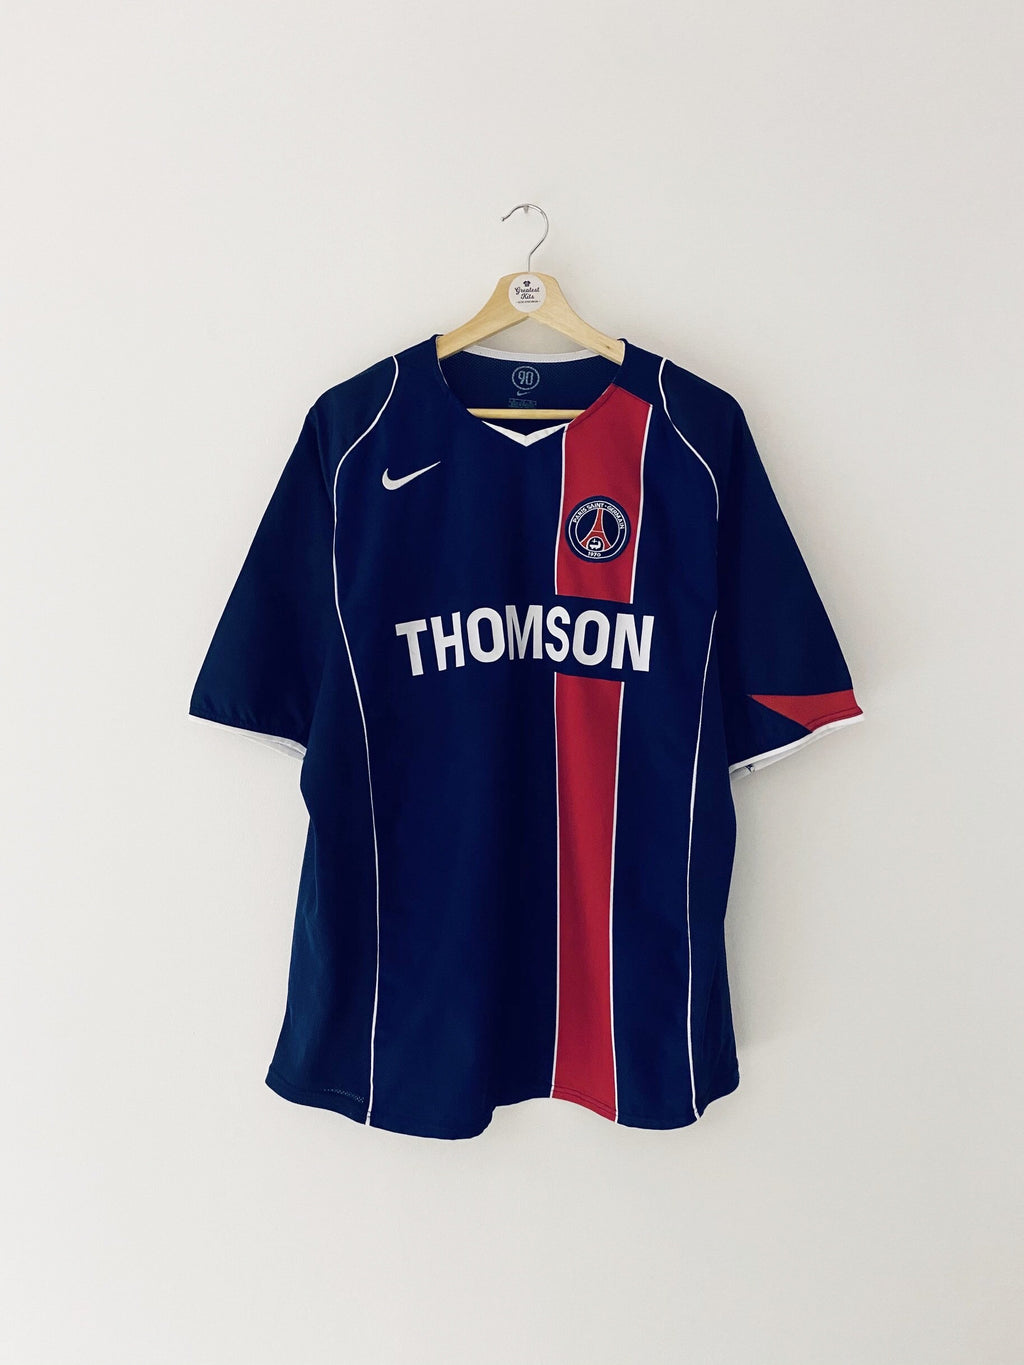 2004/05 Paris Saint-Germain Home Shirt (XL) 9/10